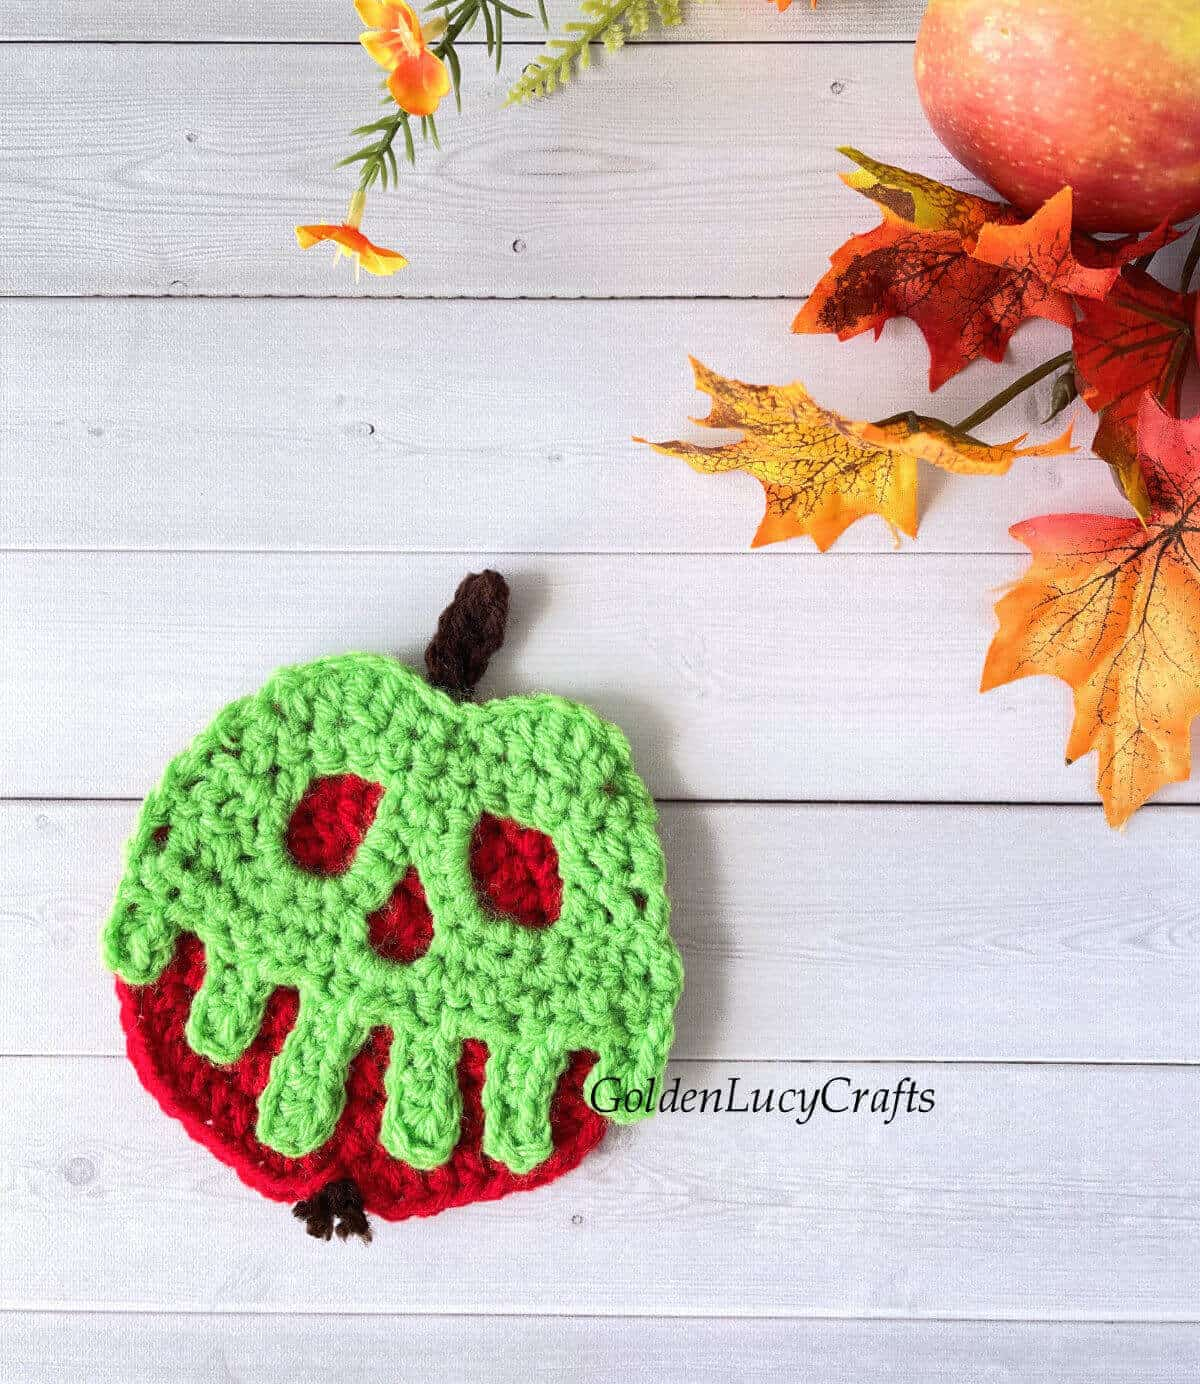 Crocheted poisoned apple applique laying on some surface.